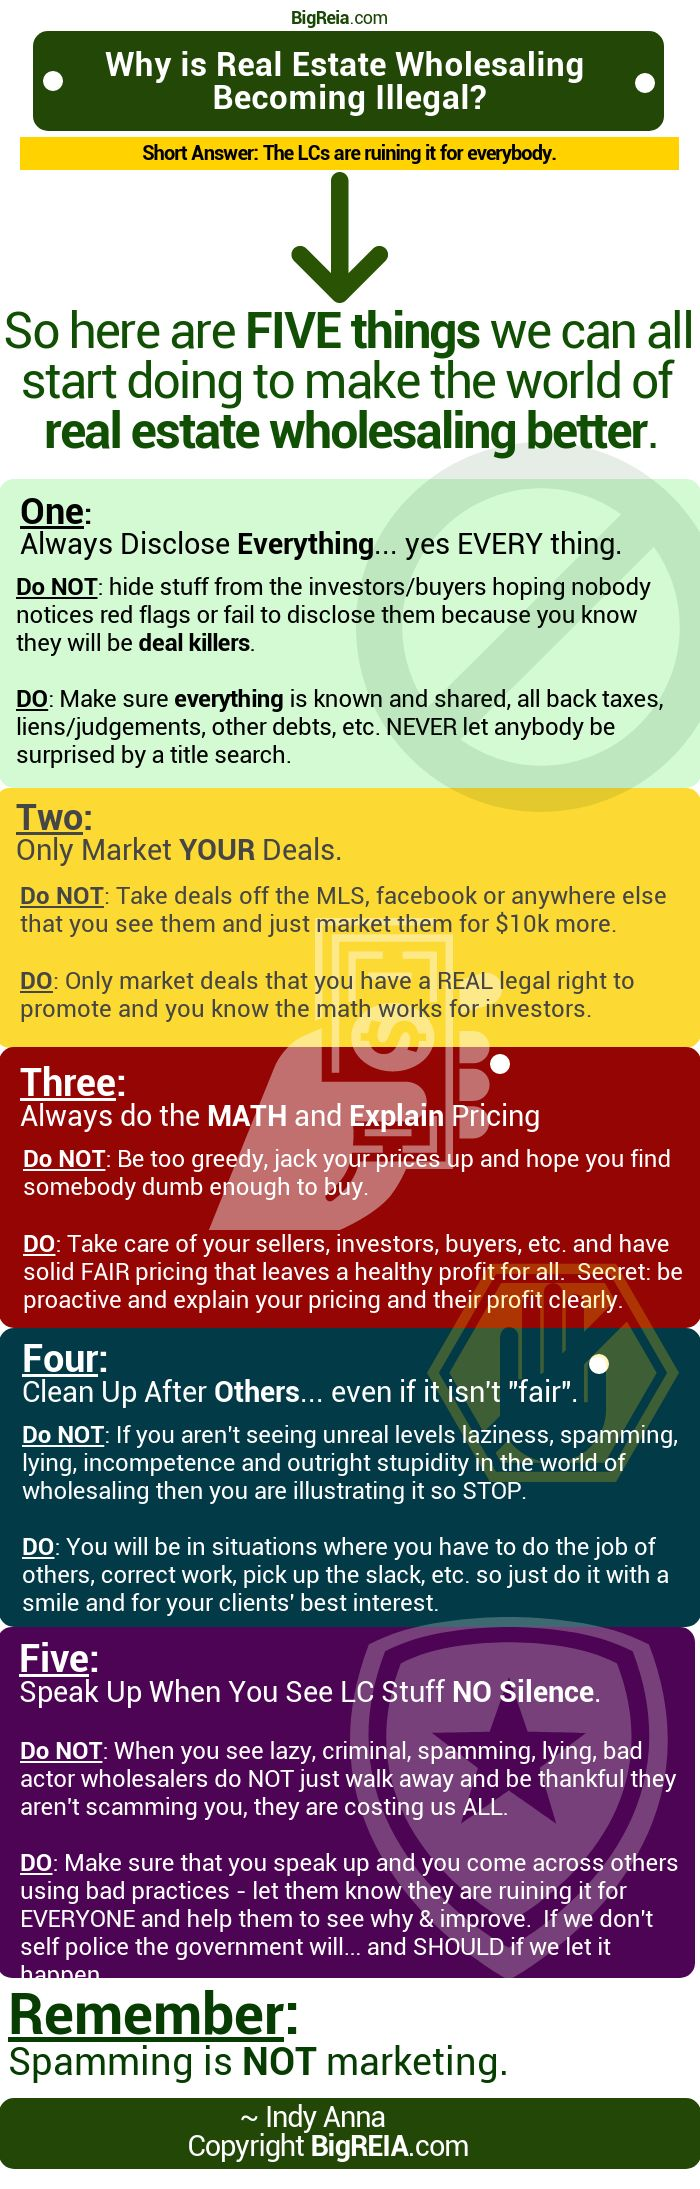 Five wholesaling mistakes to avoid to stay legal BigReia.com